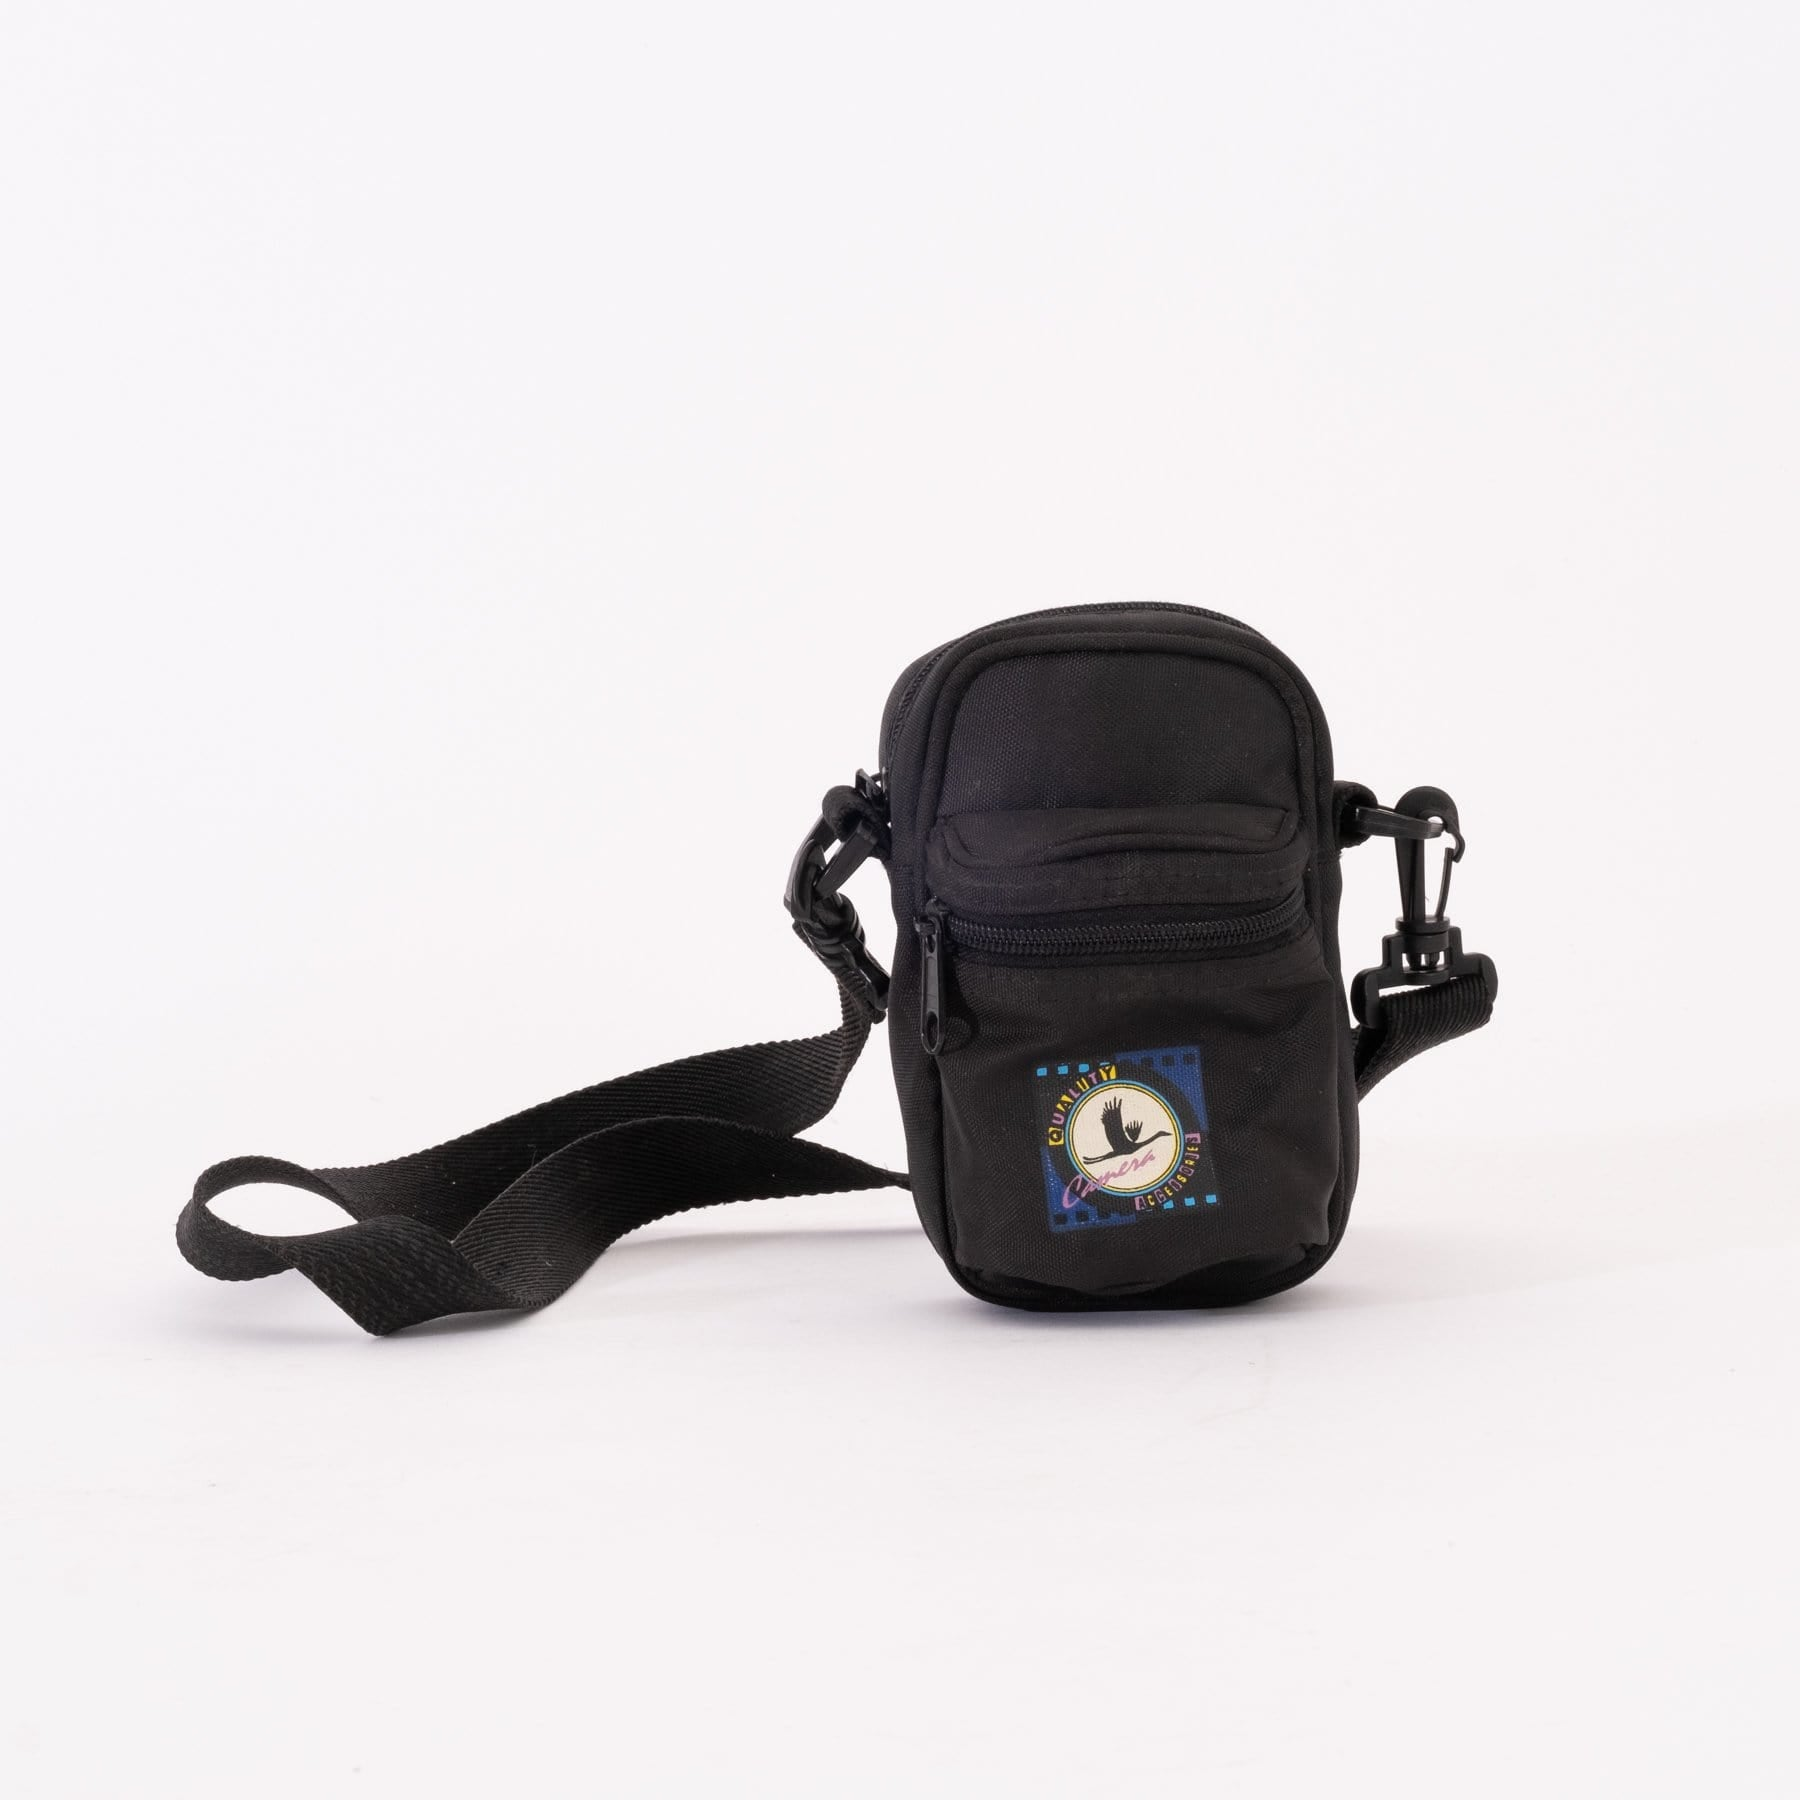 --Black Fabric Camera Carrying Case for Point and Shoot Cameras--